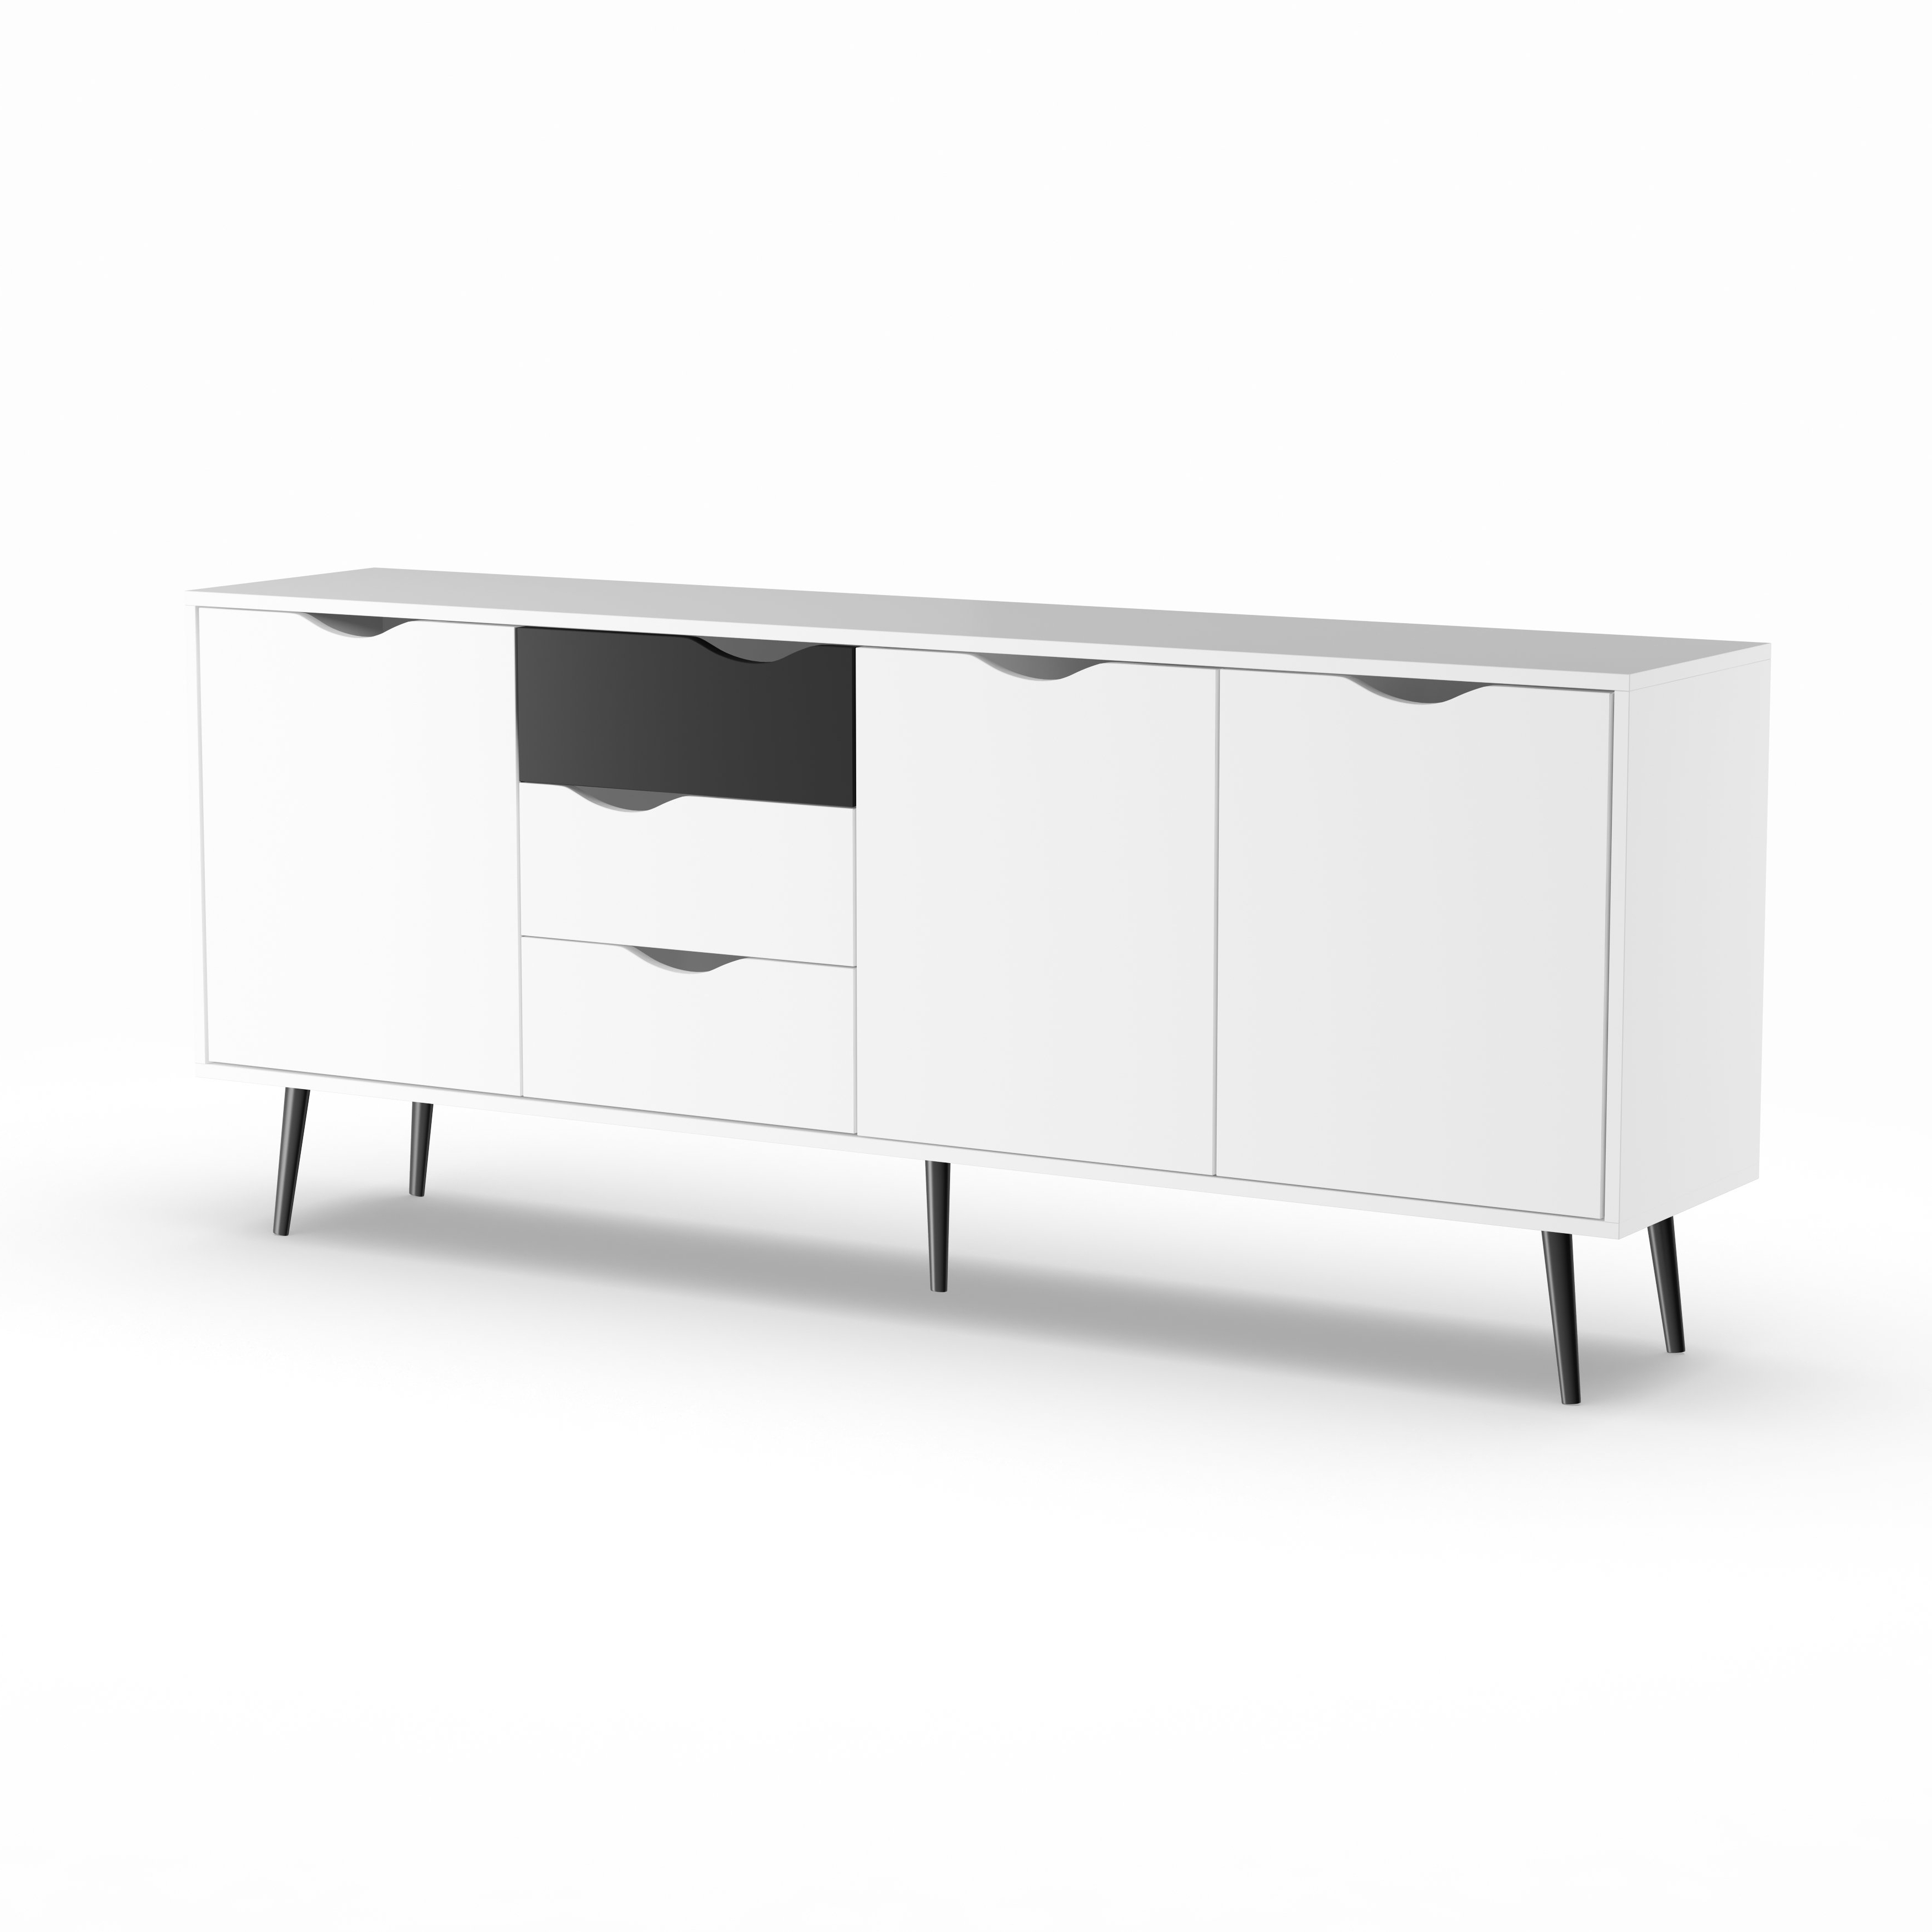 Shop Carson Carrington Kristiansund White And Matte Black 3 Drawer 3 Regarding Well Known Antique White Distressed 3 Drawer/2 Door Sideboards (View 18 of 20)